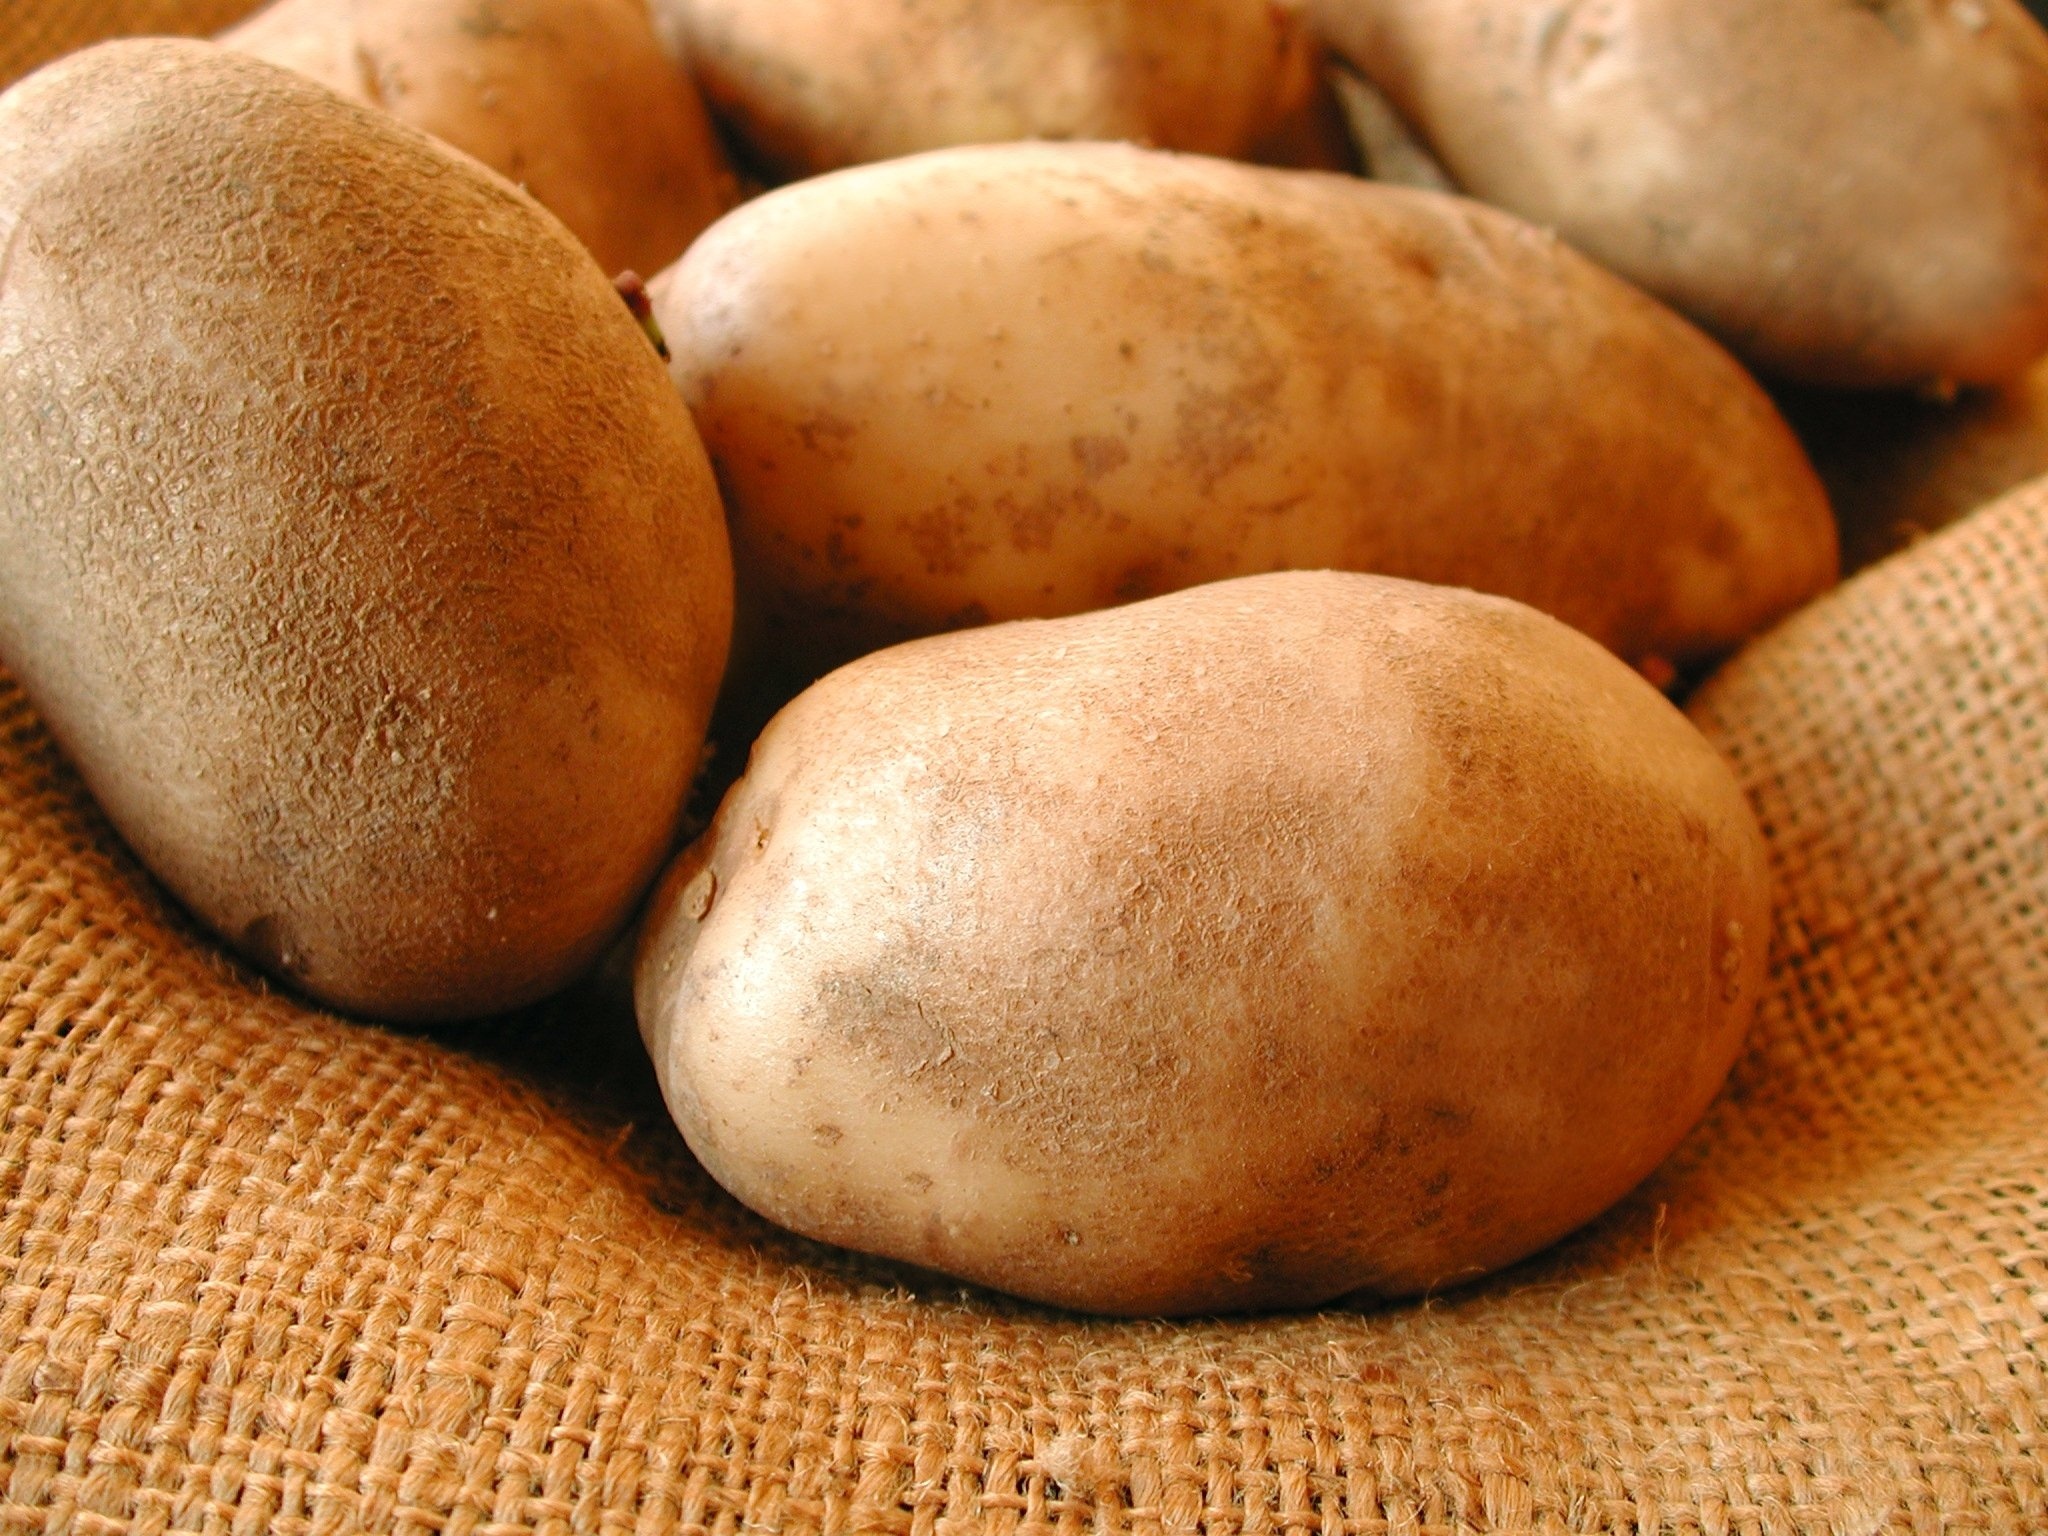 potatoes up close computer wallpaper 63190